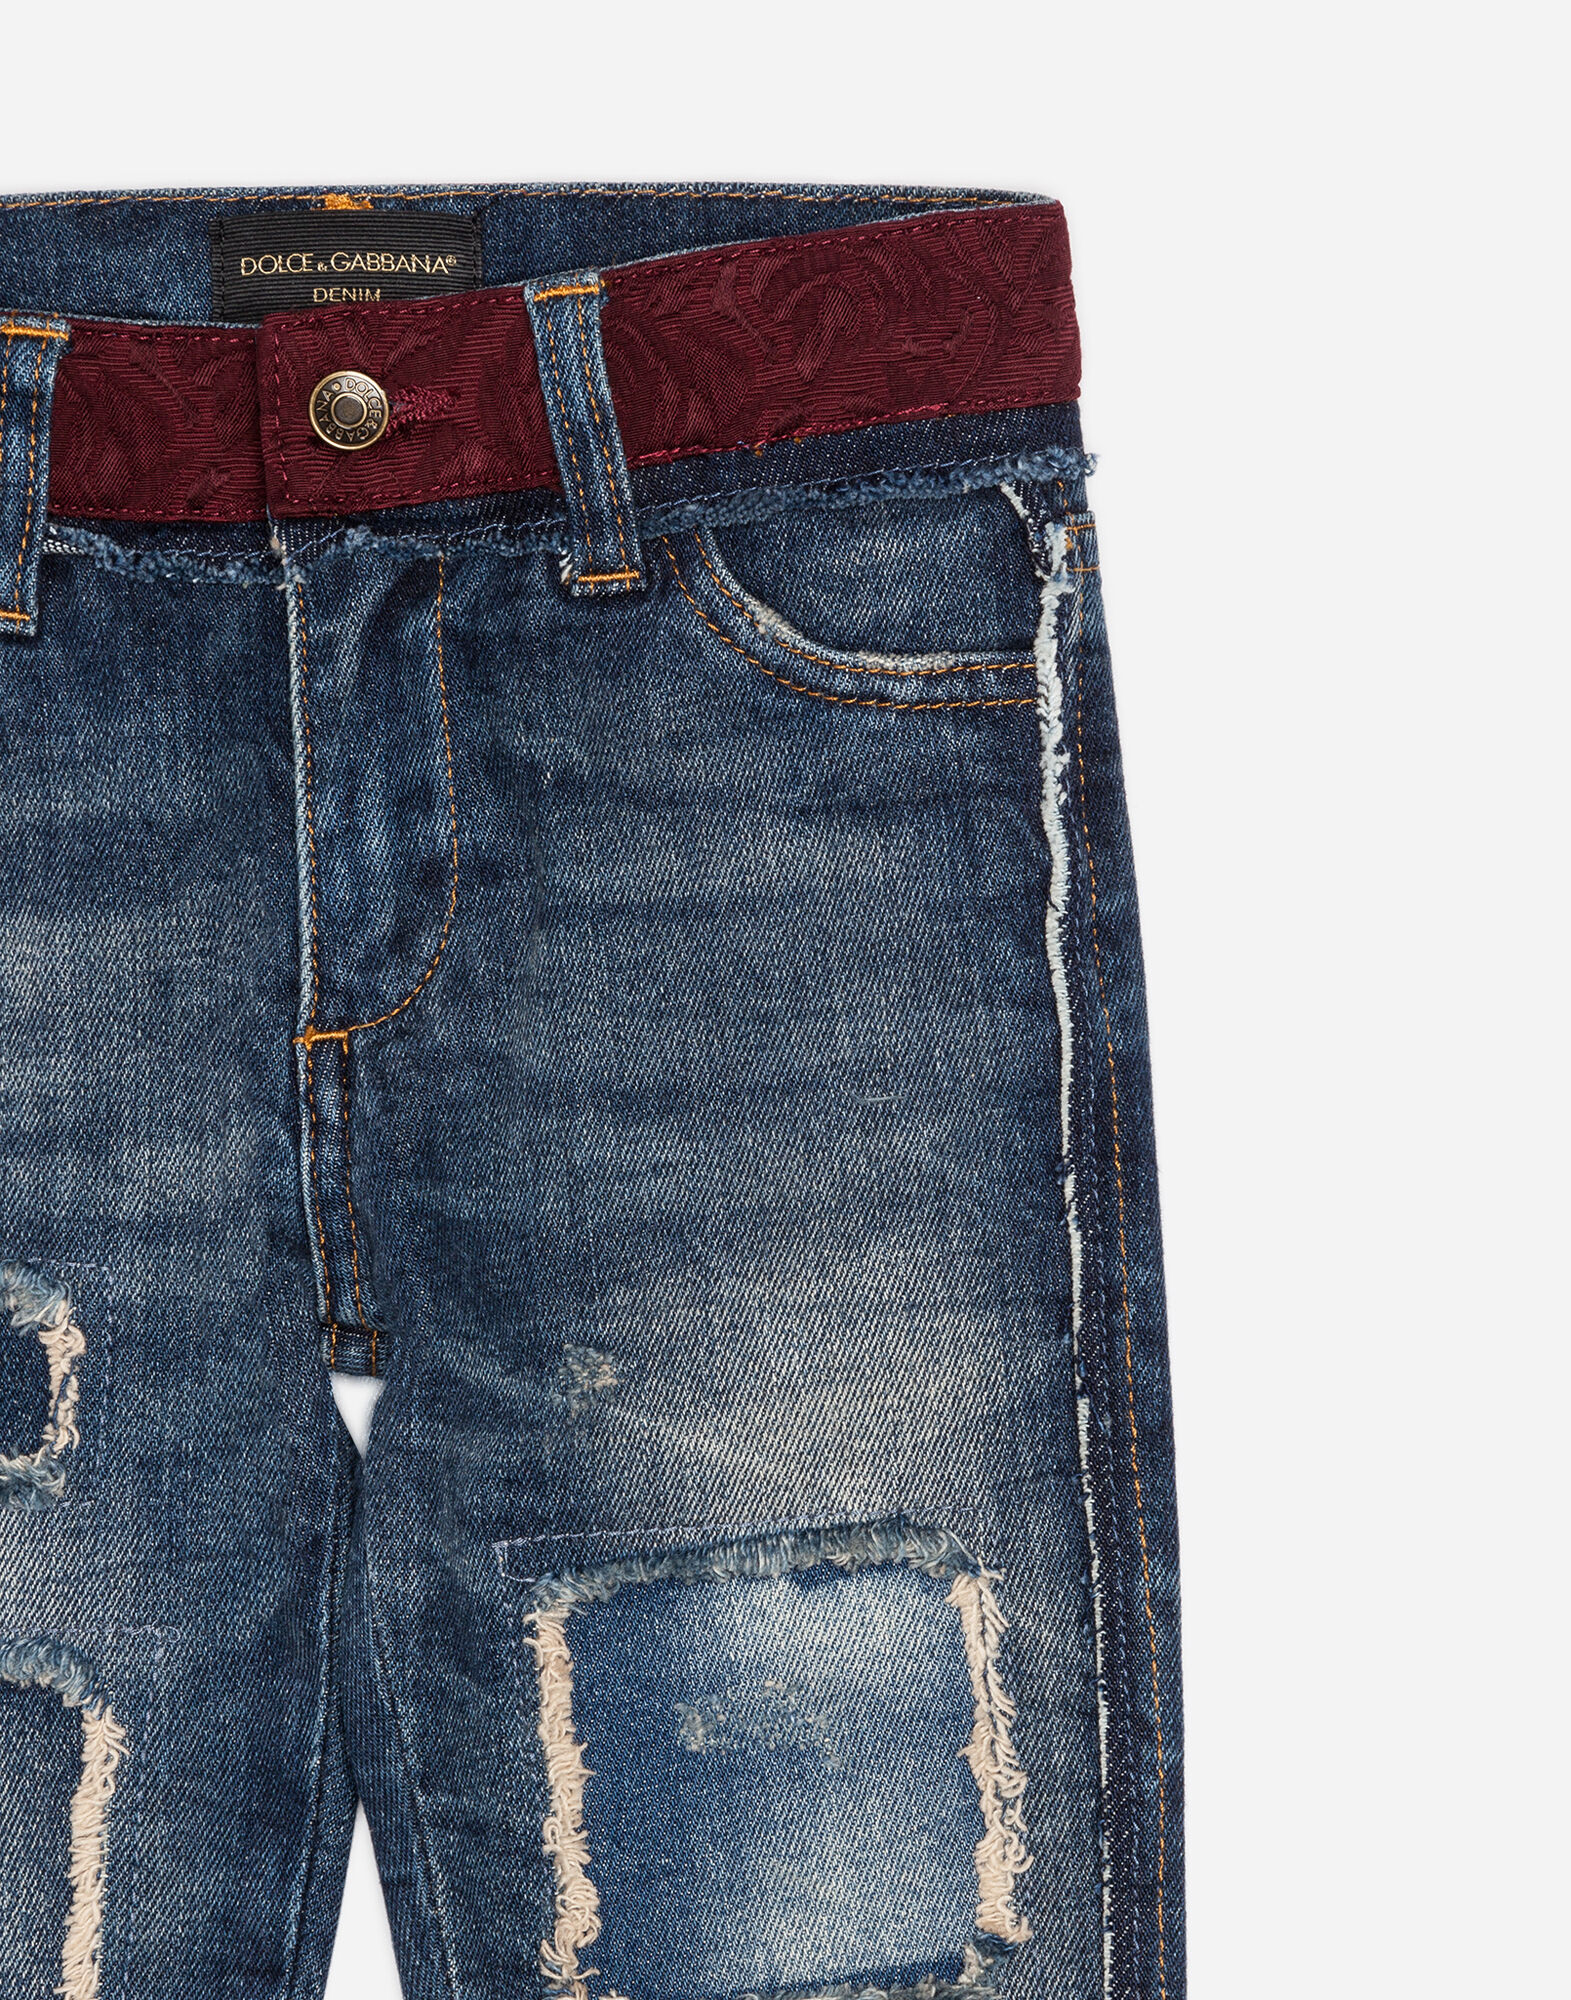 Dolce&Gabbana STRETCH JEANS WITH PATCHES